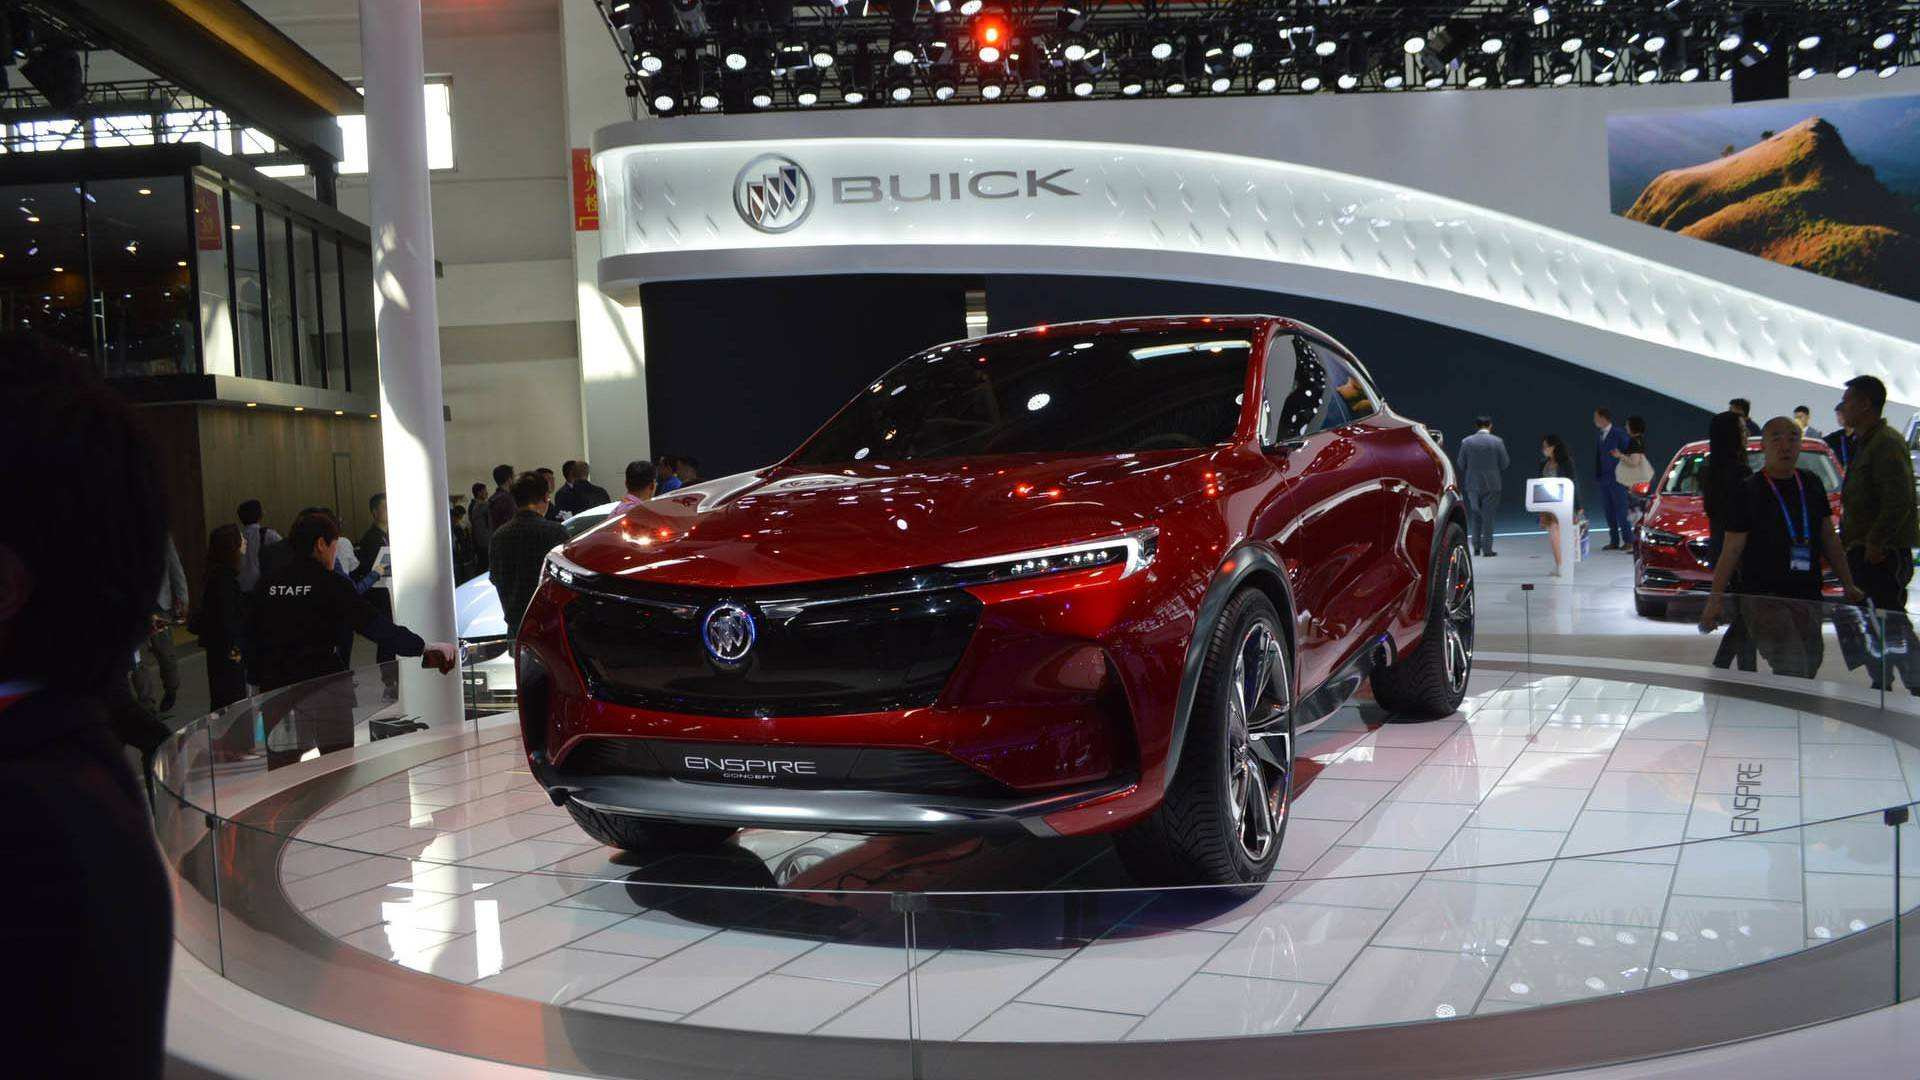 53 New 2020 Buick Enspire New Concept with 2020 Buick Enspire